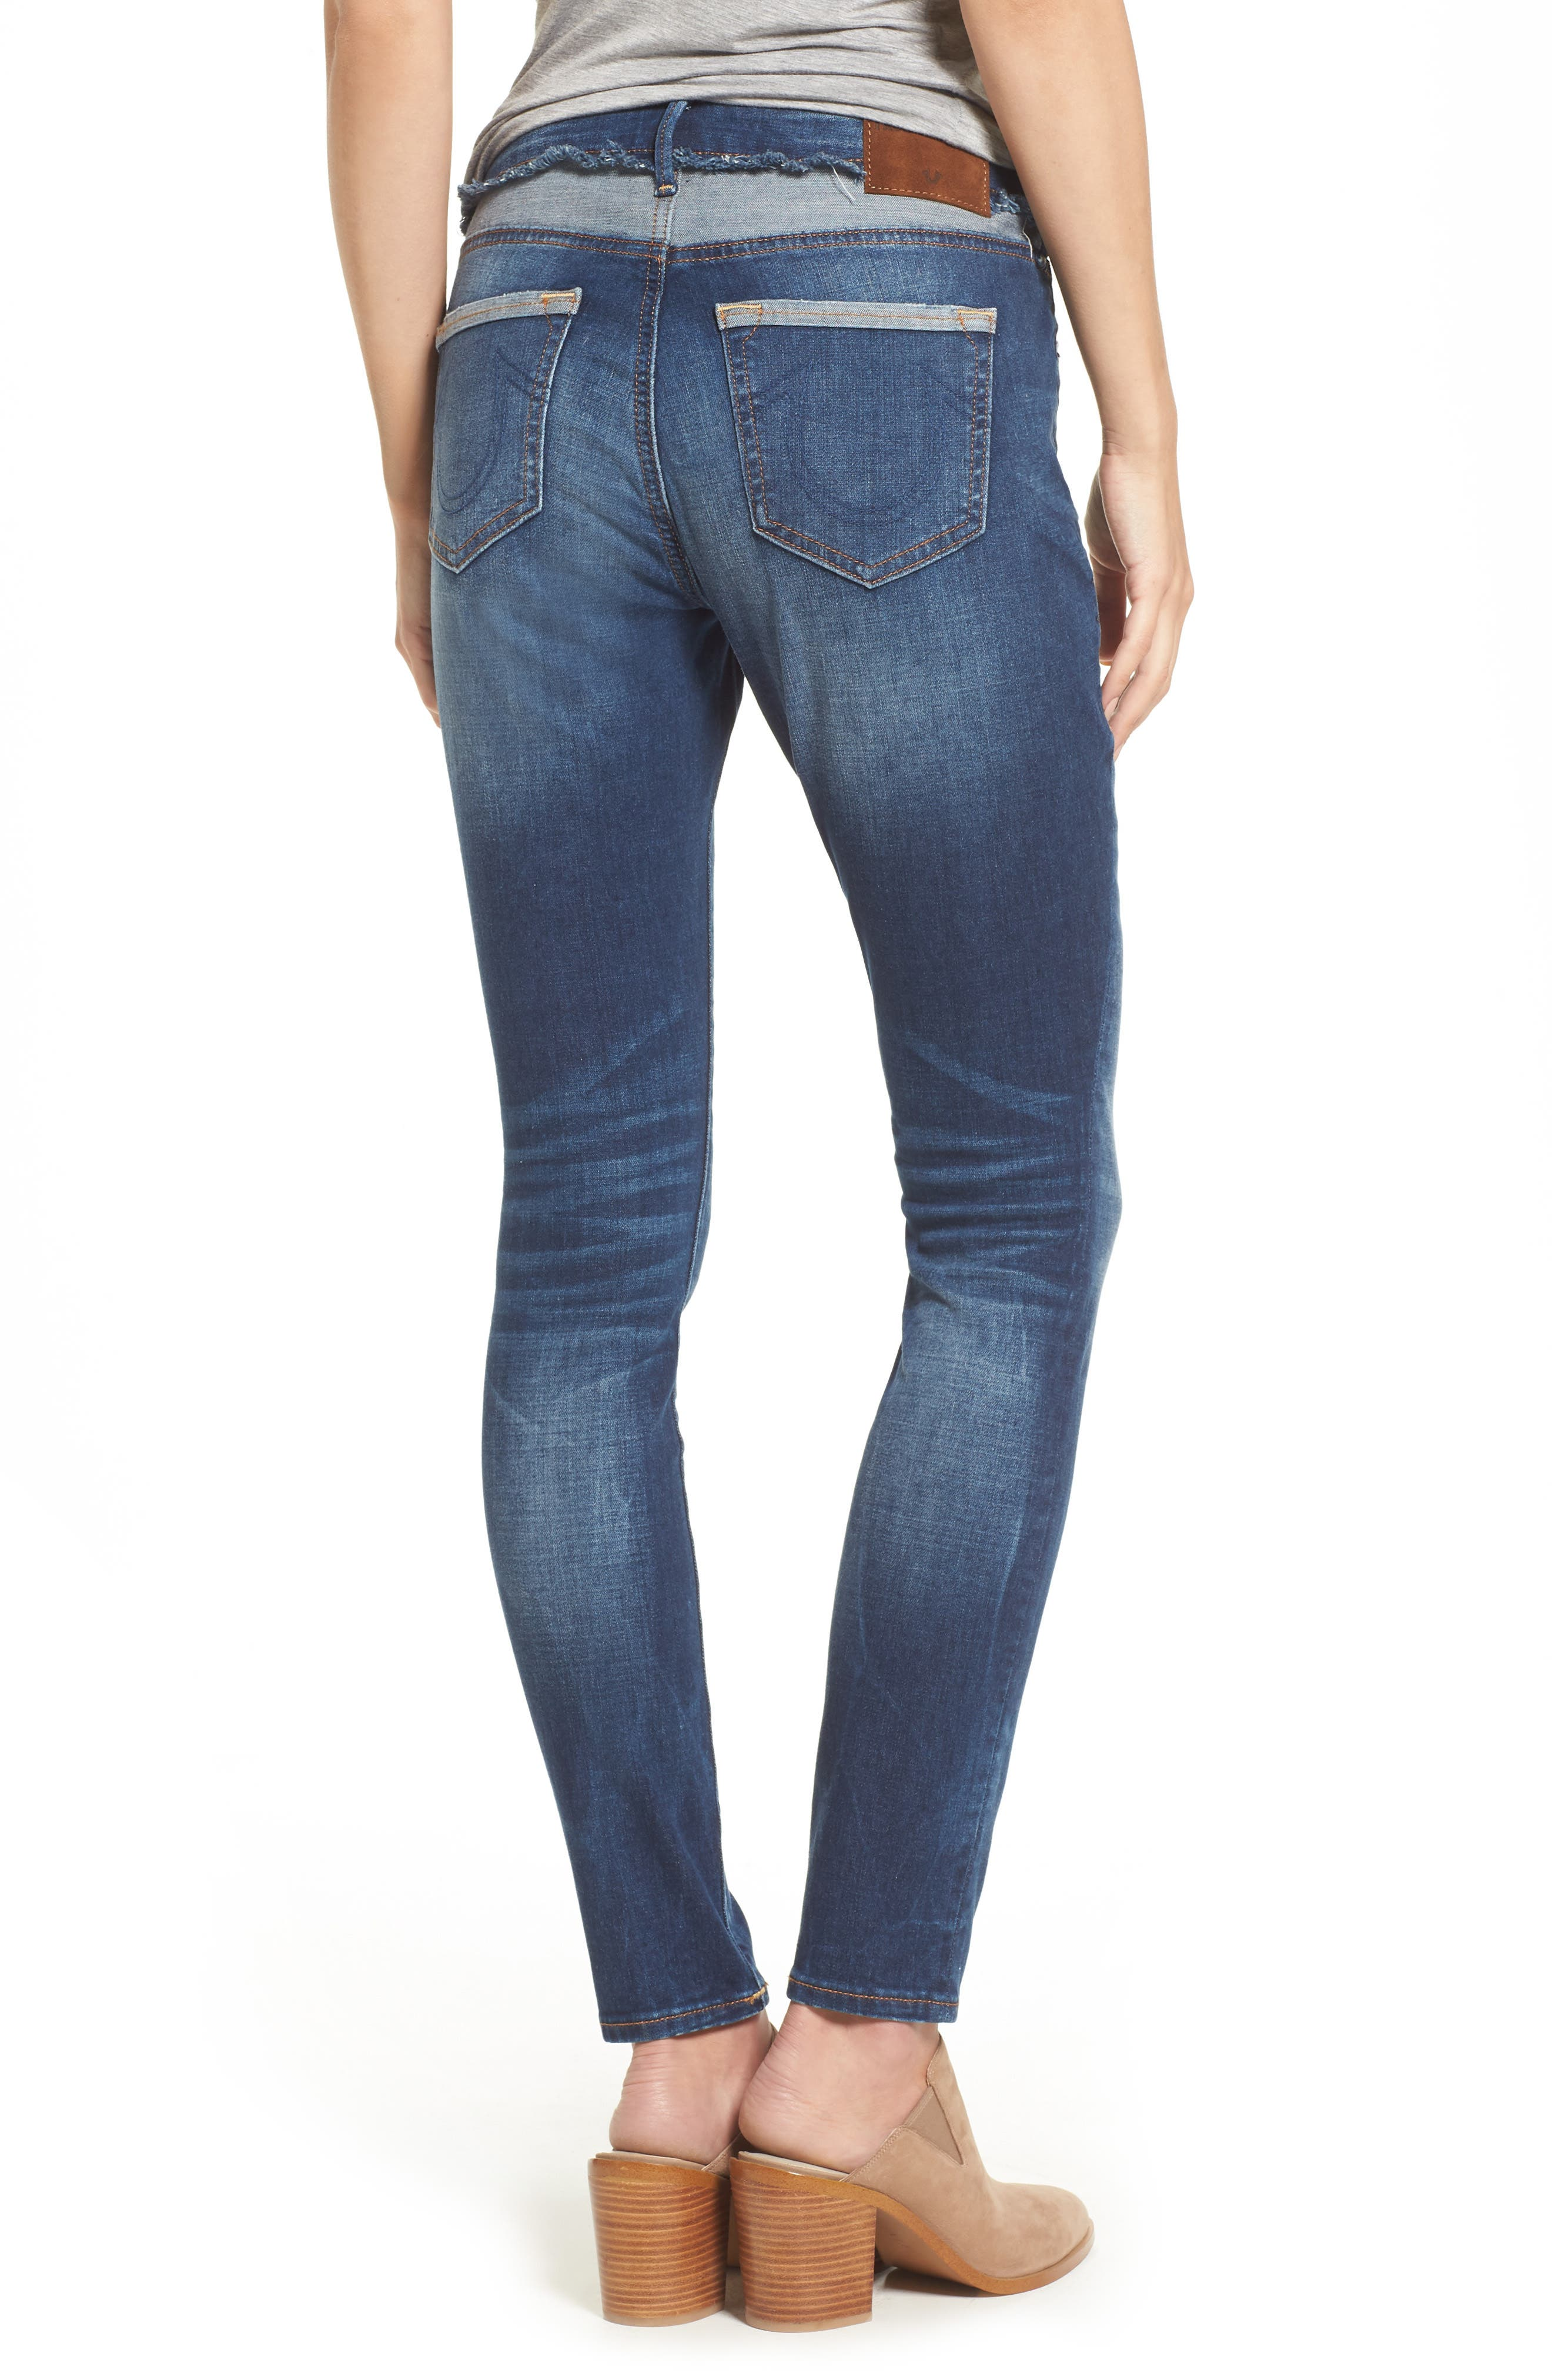 Jennie Deconstructed Skinny Jeans,                             Alternate thumbnail 2, color,                             401